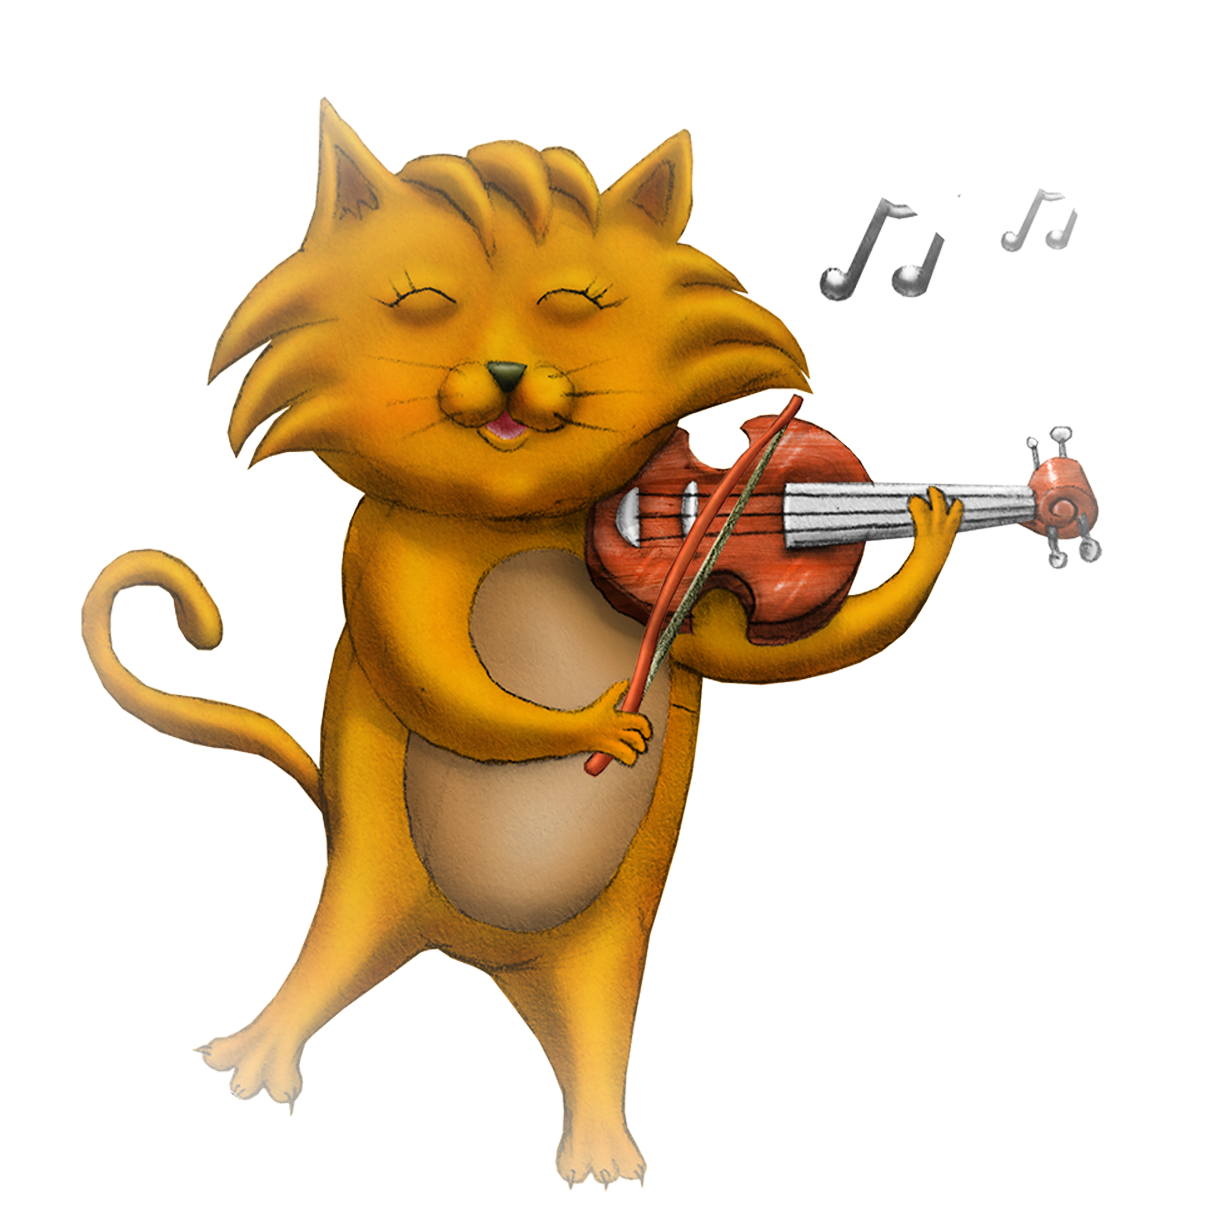 Cat and the fiddle clipart free library Zero Fruit | Tiny Tim Blows a Bubble free library